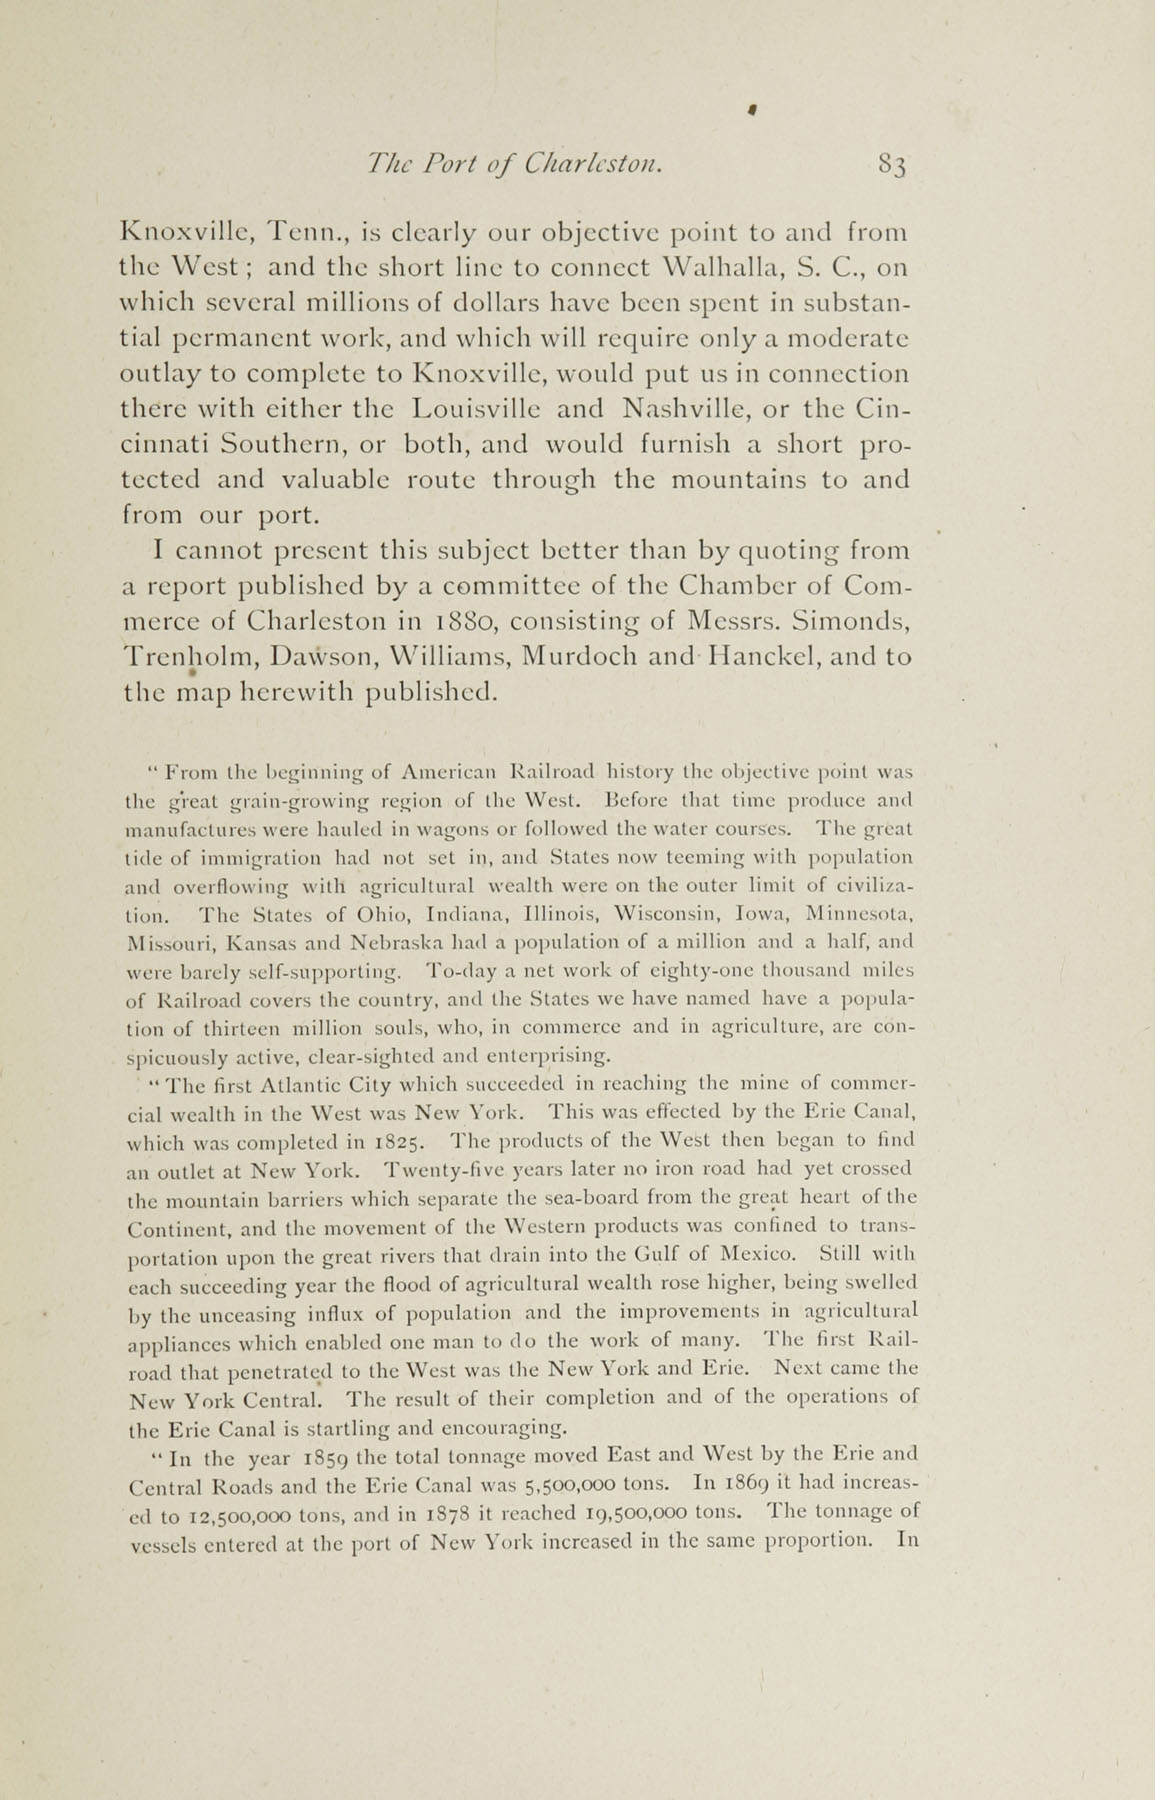 Charleston Year book, 1880, page 83